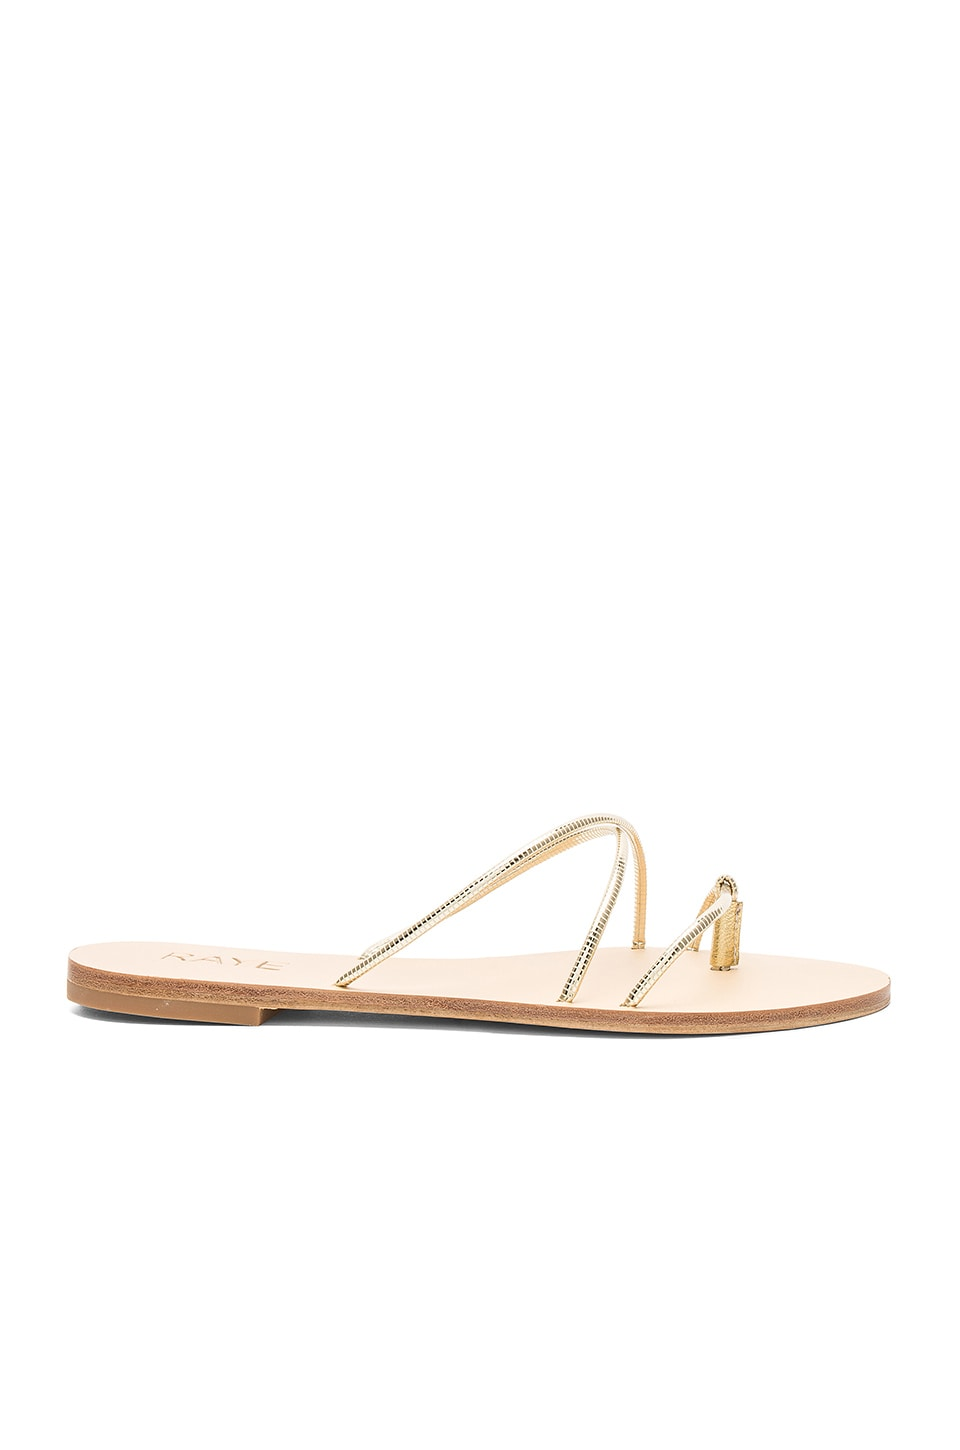 RAYE Myla Sandal in Gold